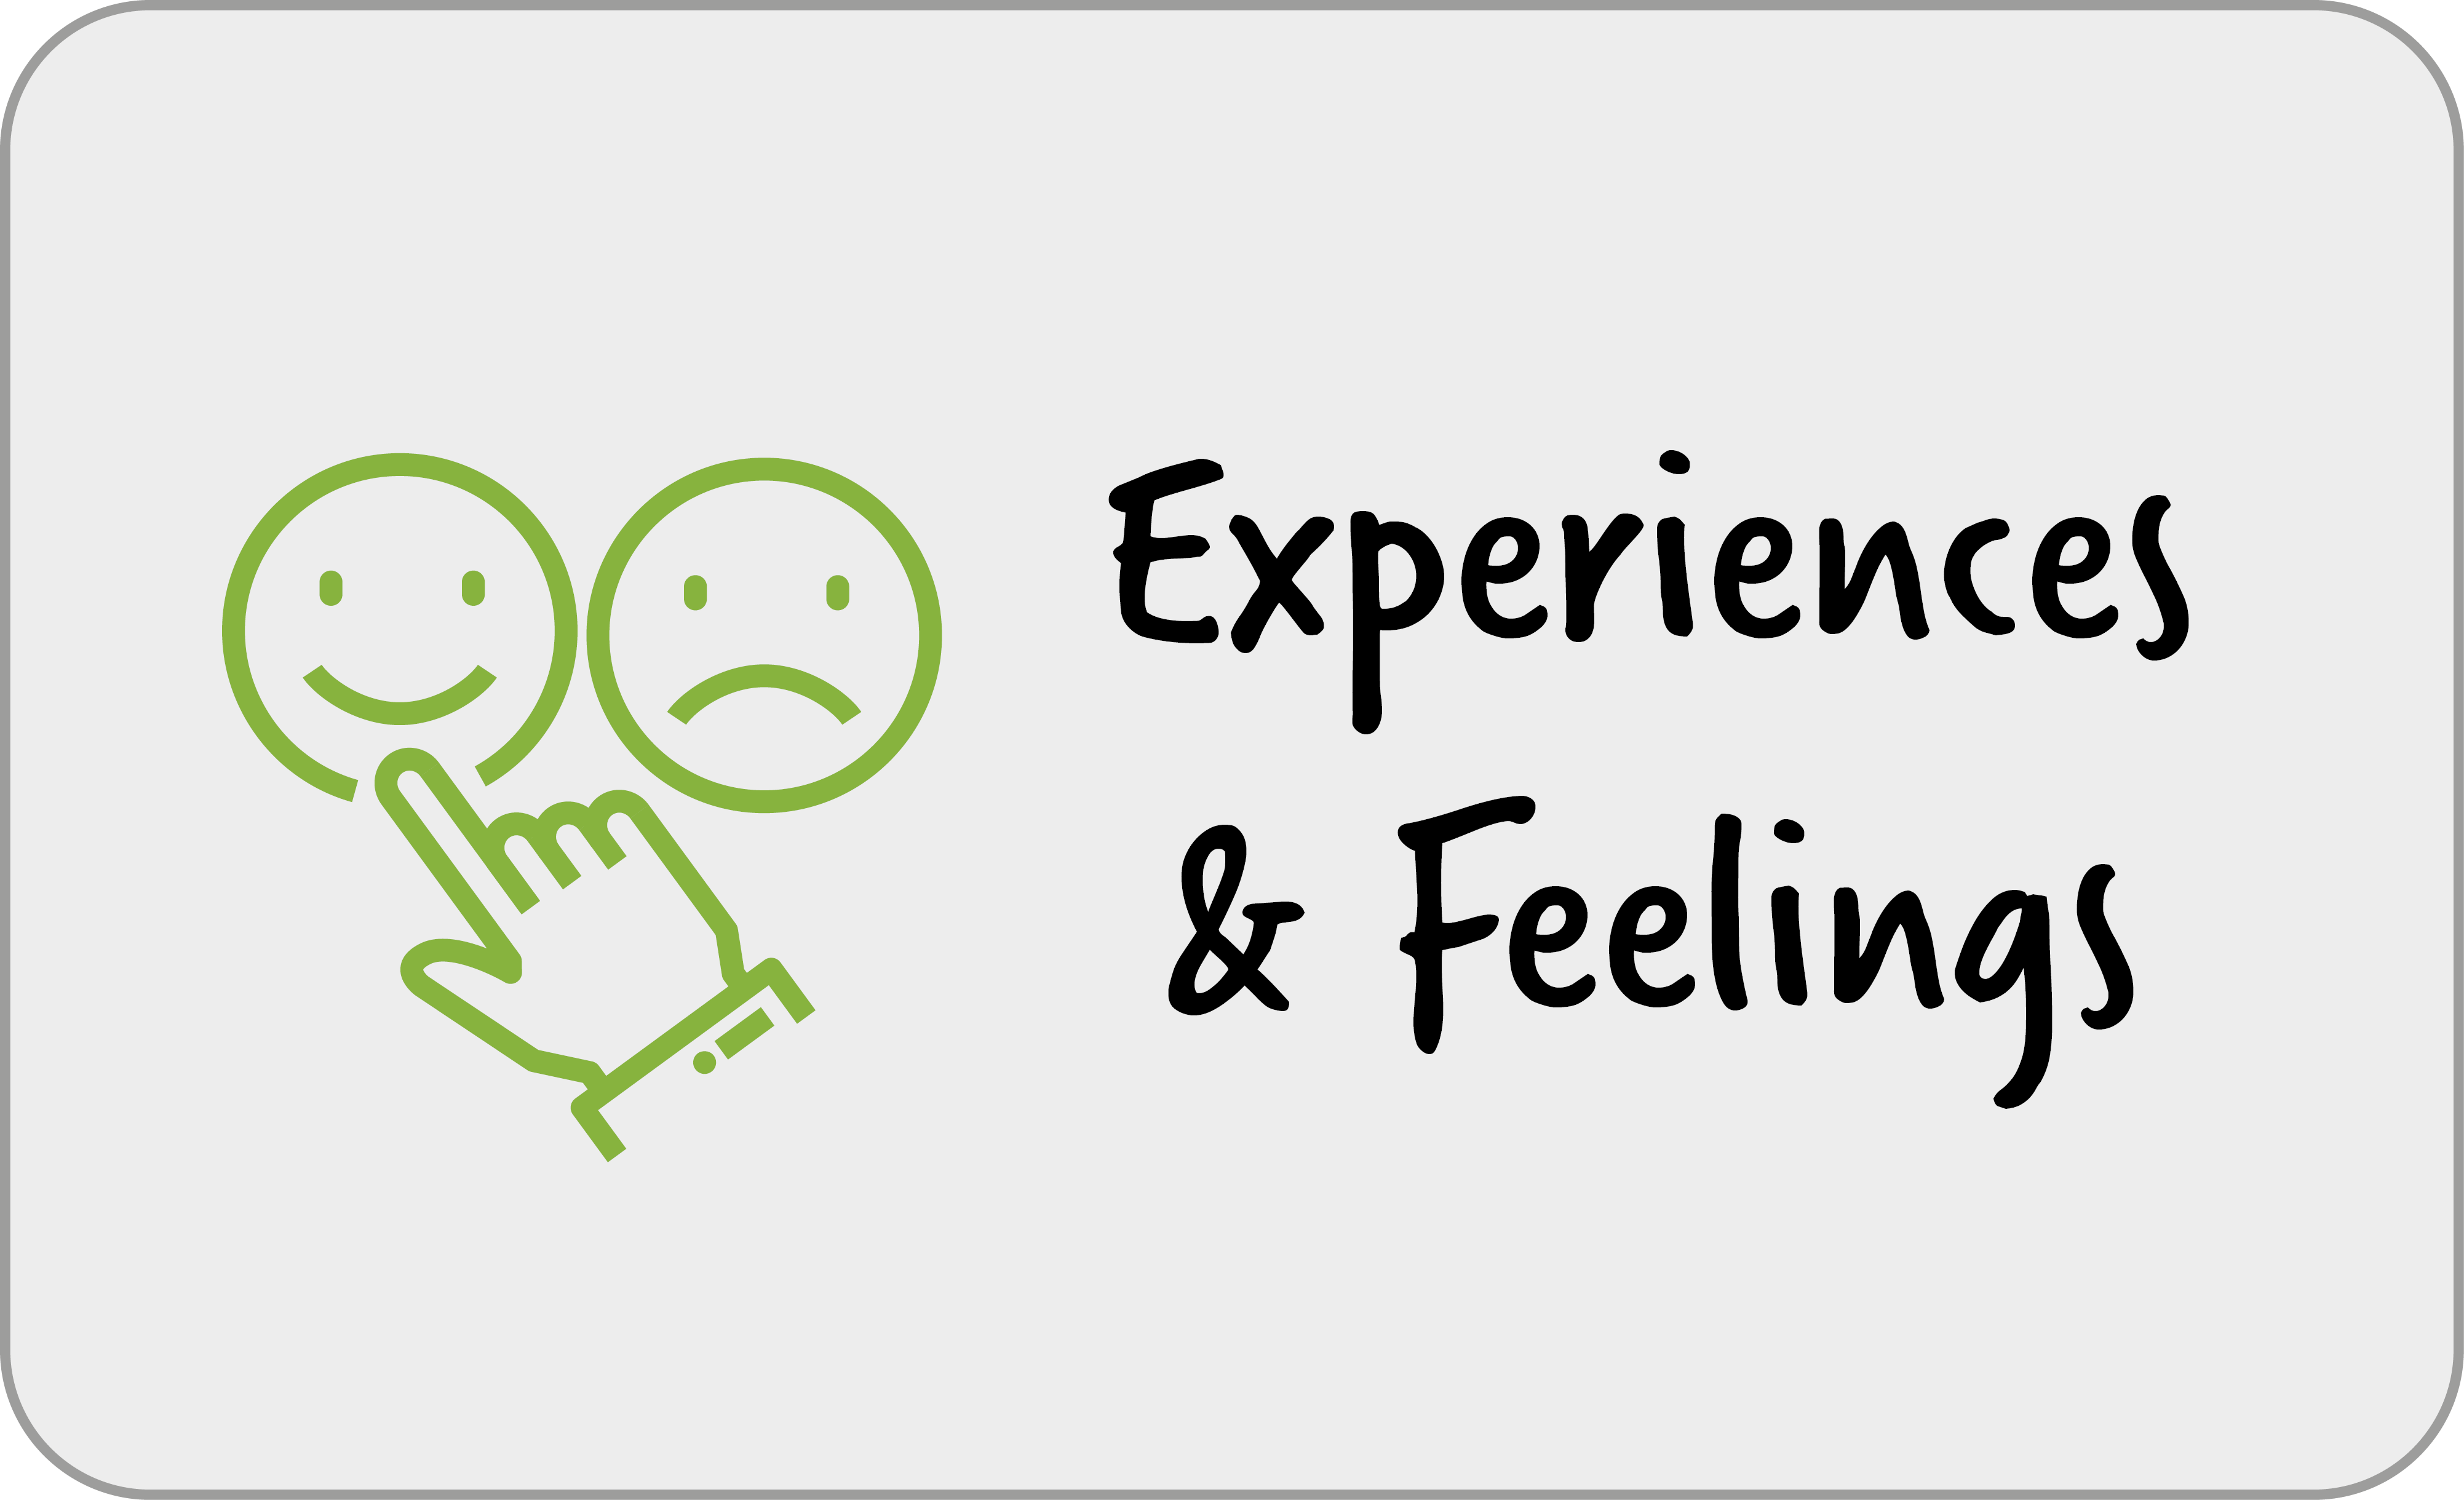 Experiences and Feelings